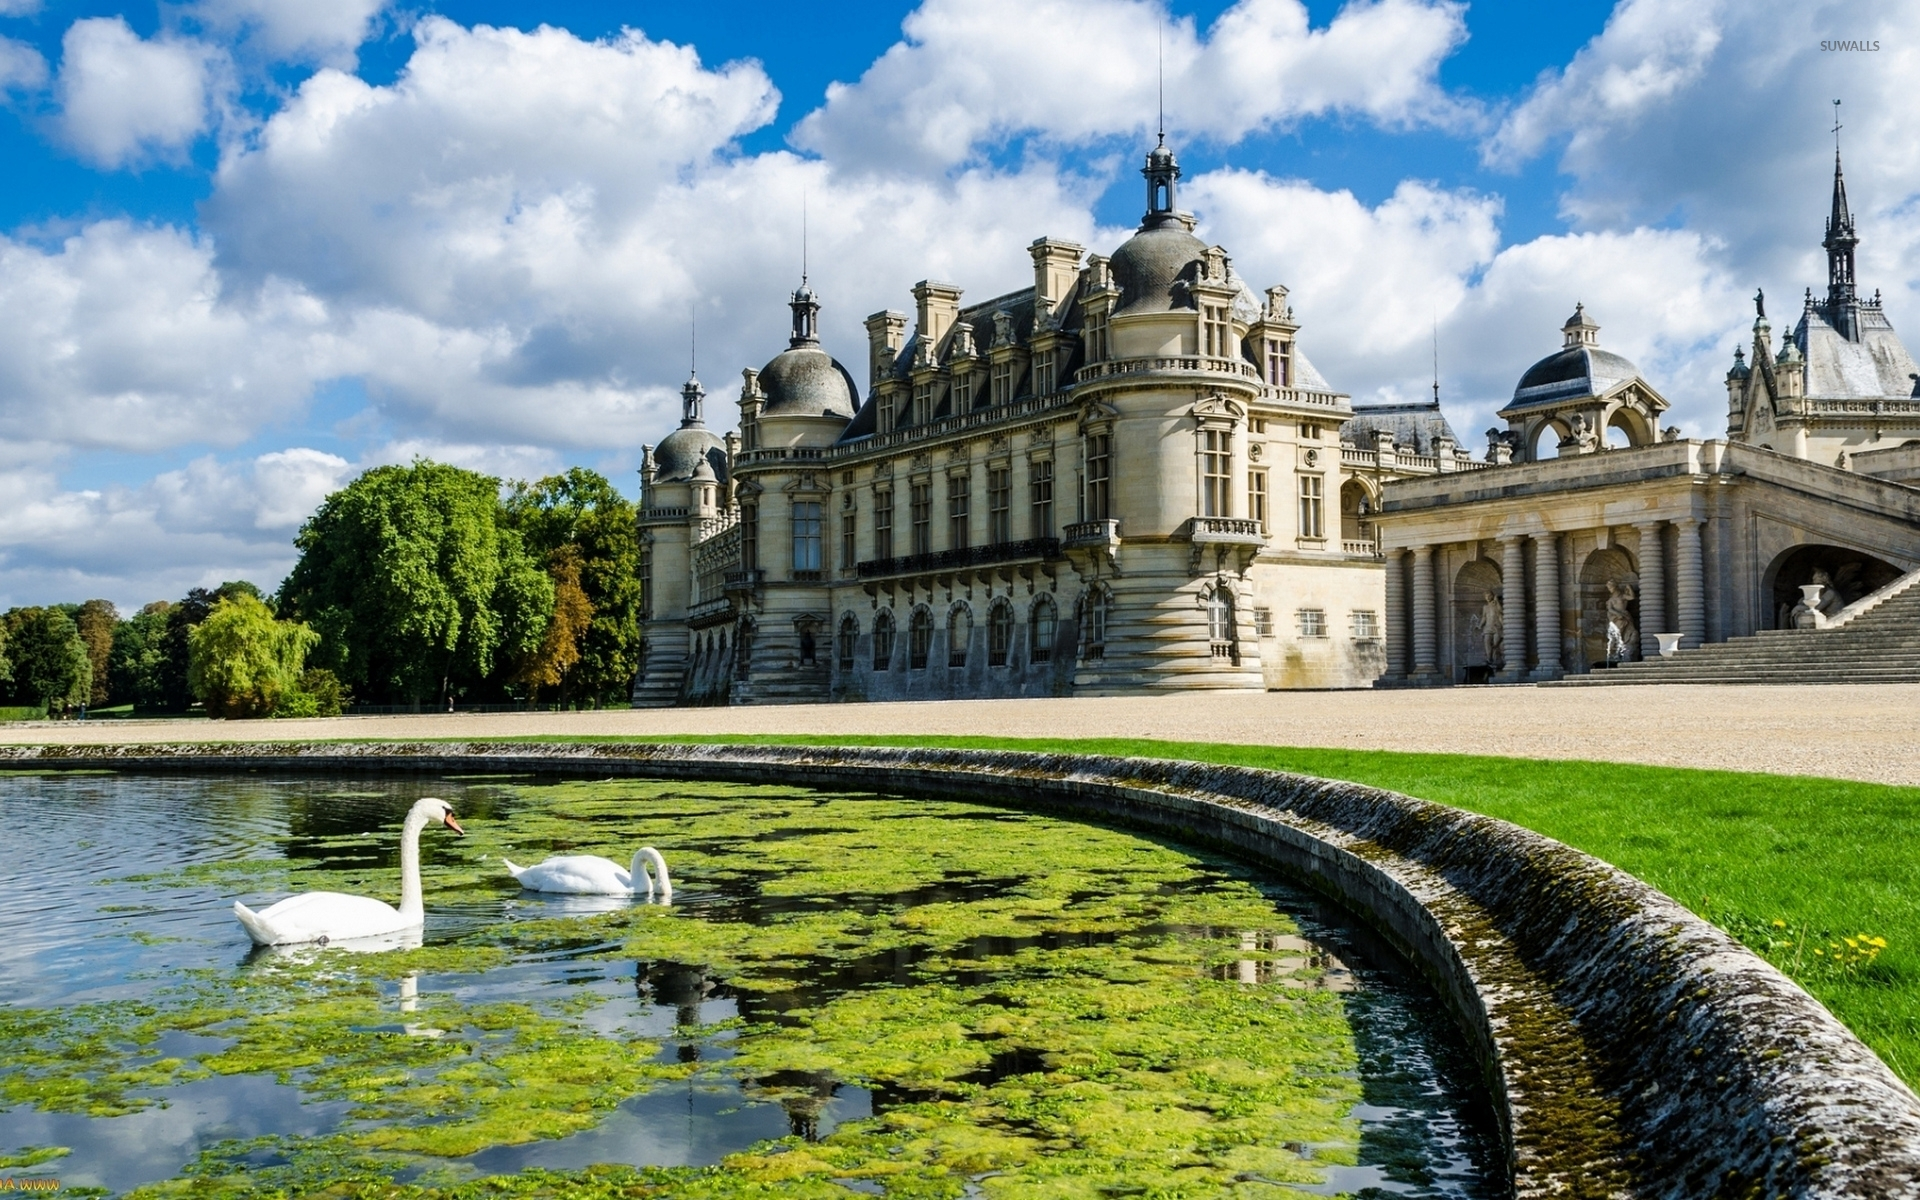 swans in the lake by the chateau de chantilly wallpaper. Black Bedroom Furniture Sets. Home Design Ideas